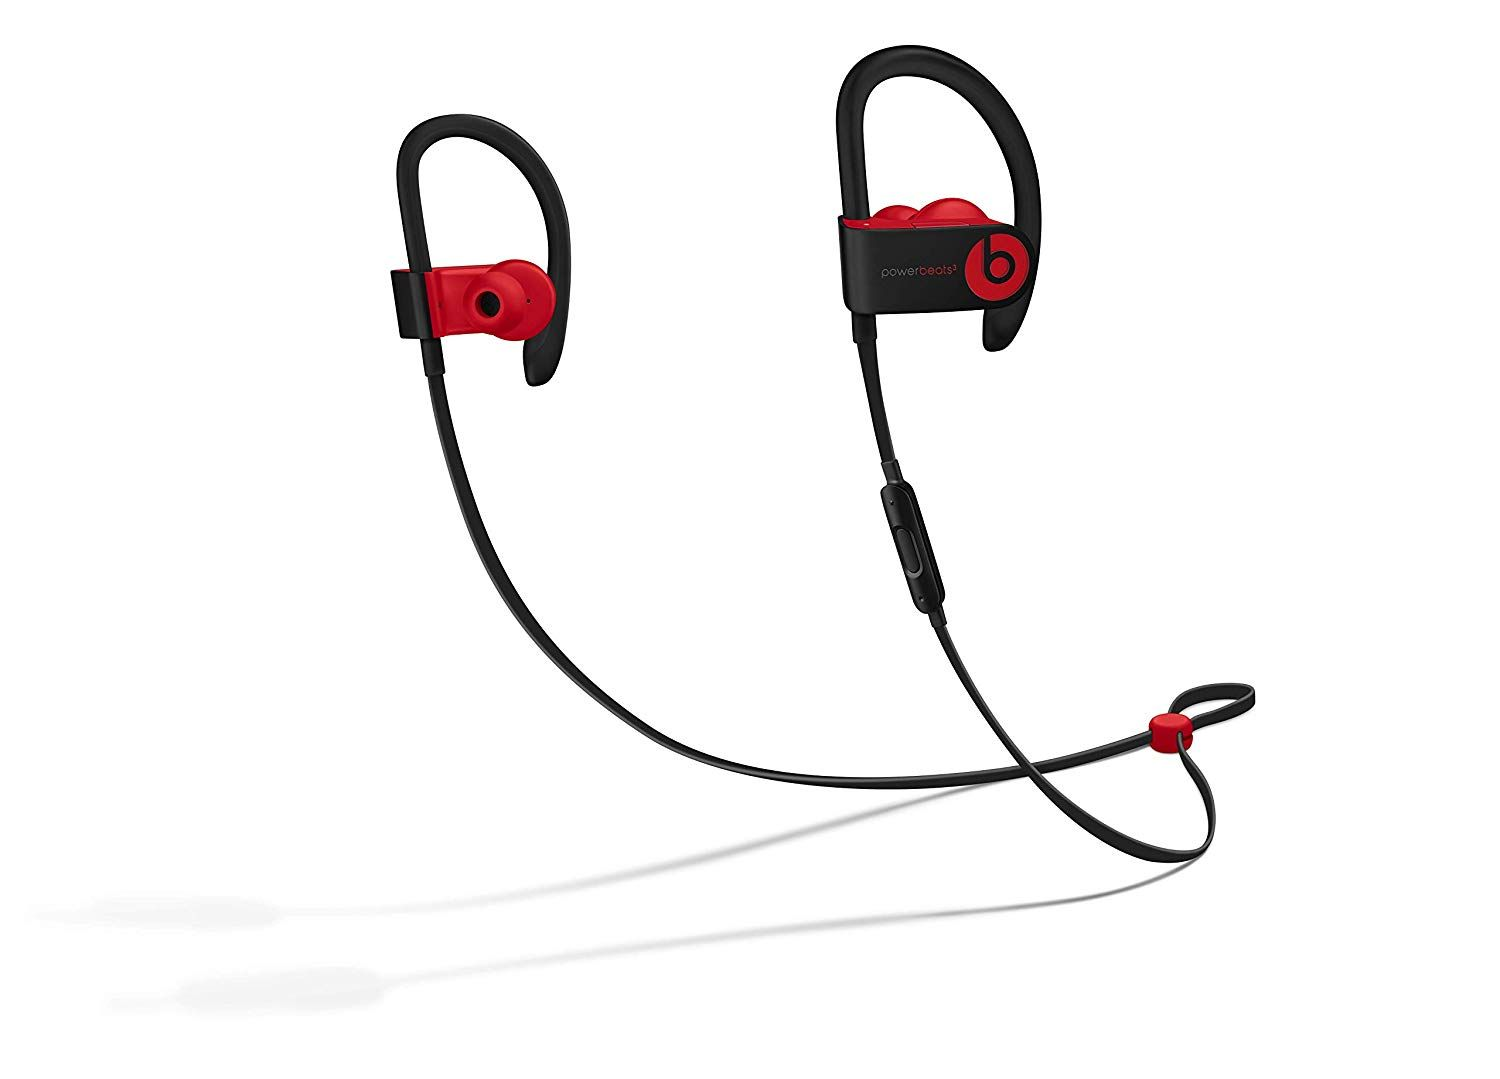 Super Duper Deal Powerbeats3 Wireless In Ear Headphone The Beats Decade Collection Defia In 2020 In Ear Headphones Wireless Earphones Wireless In Ear Headphones